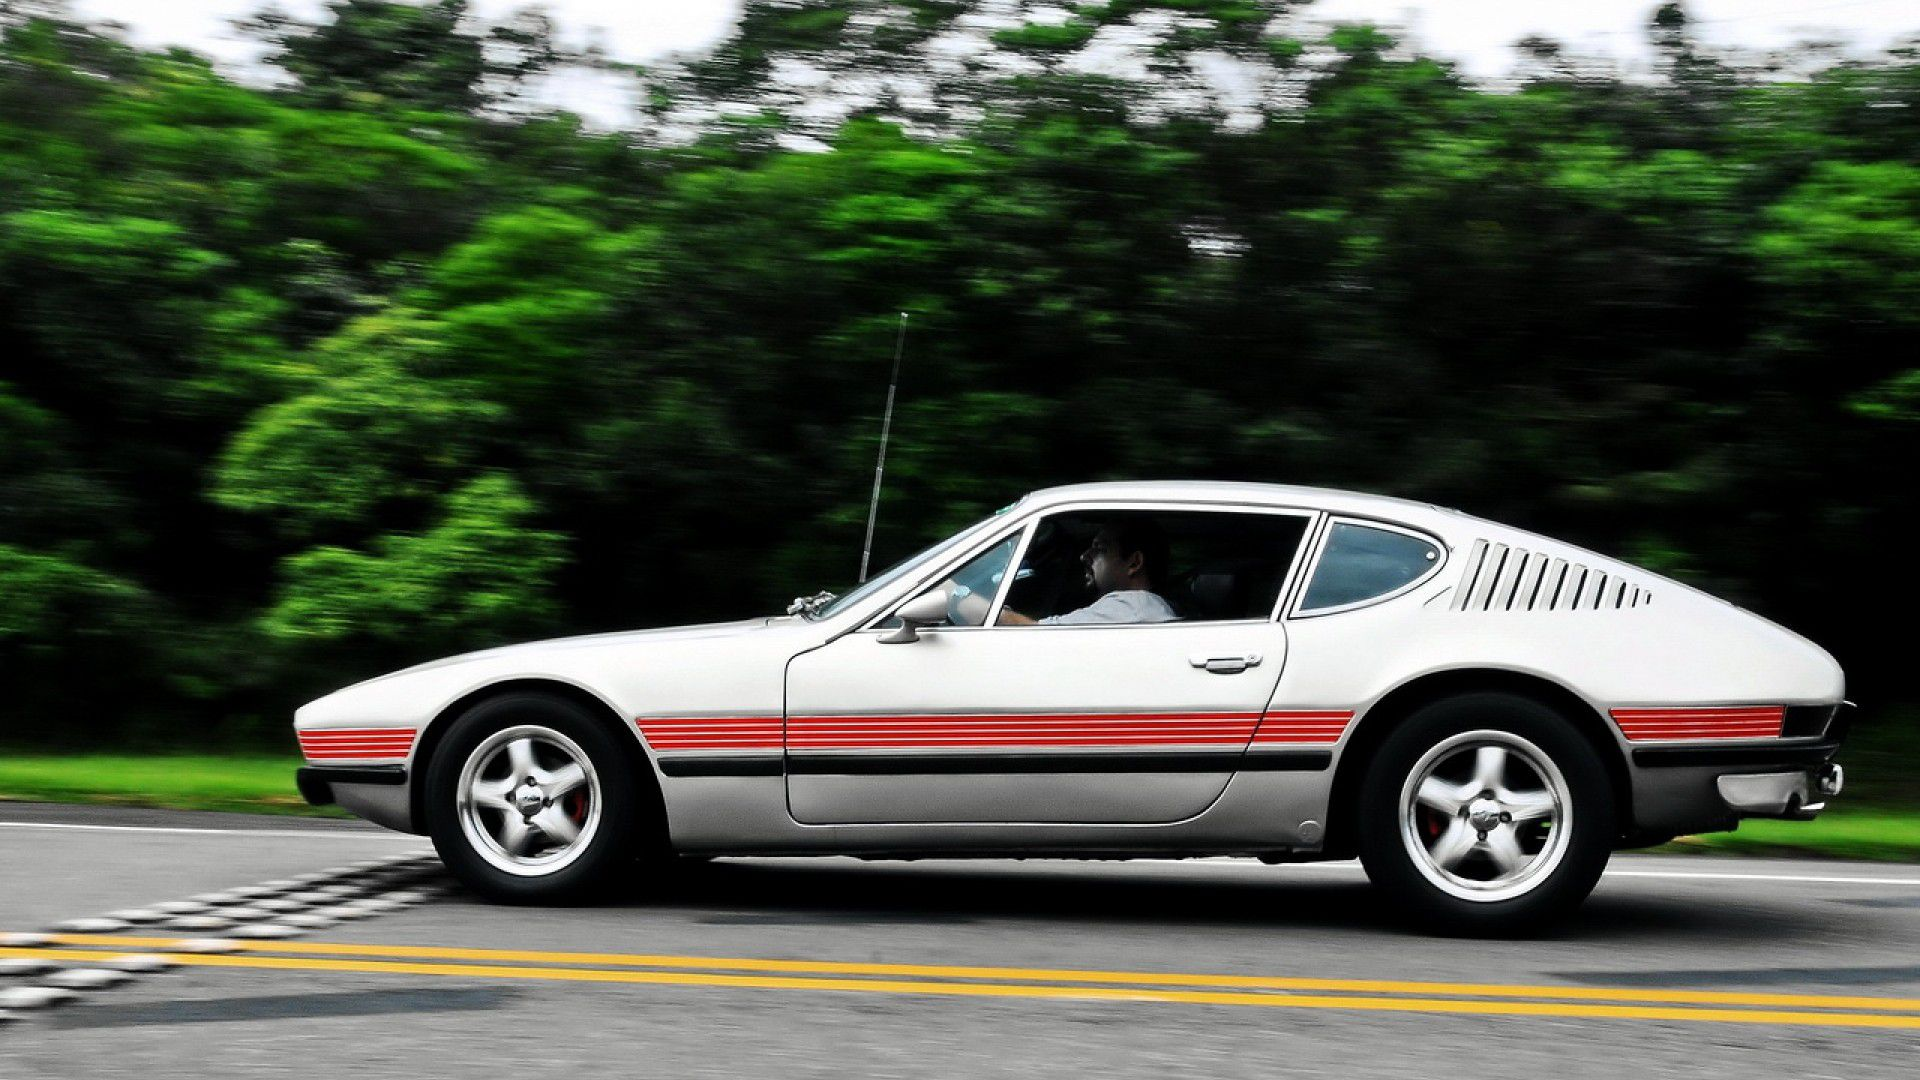 Volkswagen sp2 photo - 7